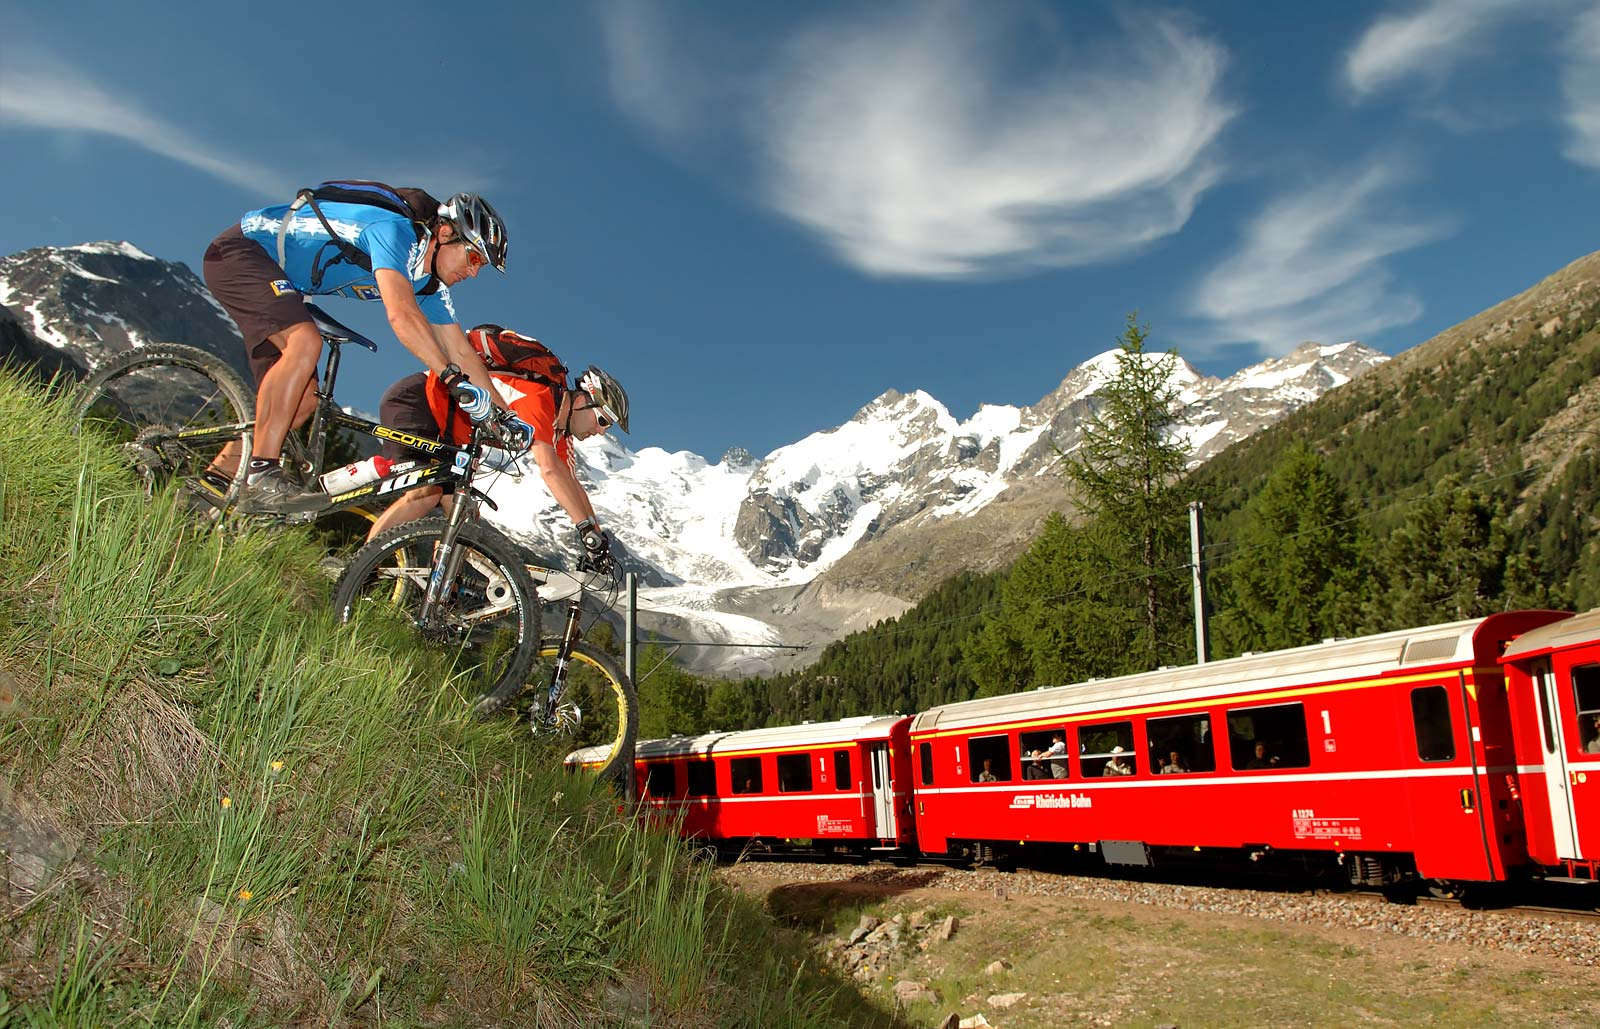 Two cyclists on a hill watching the Bernina train pass